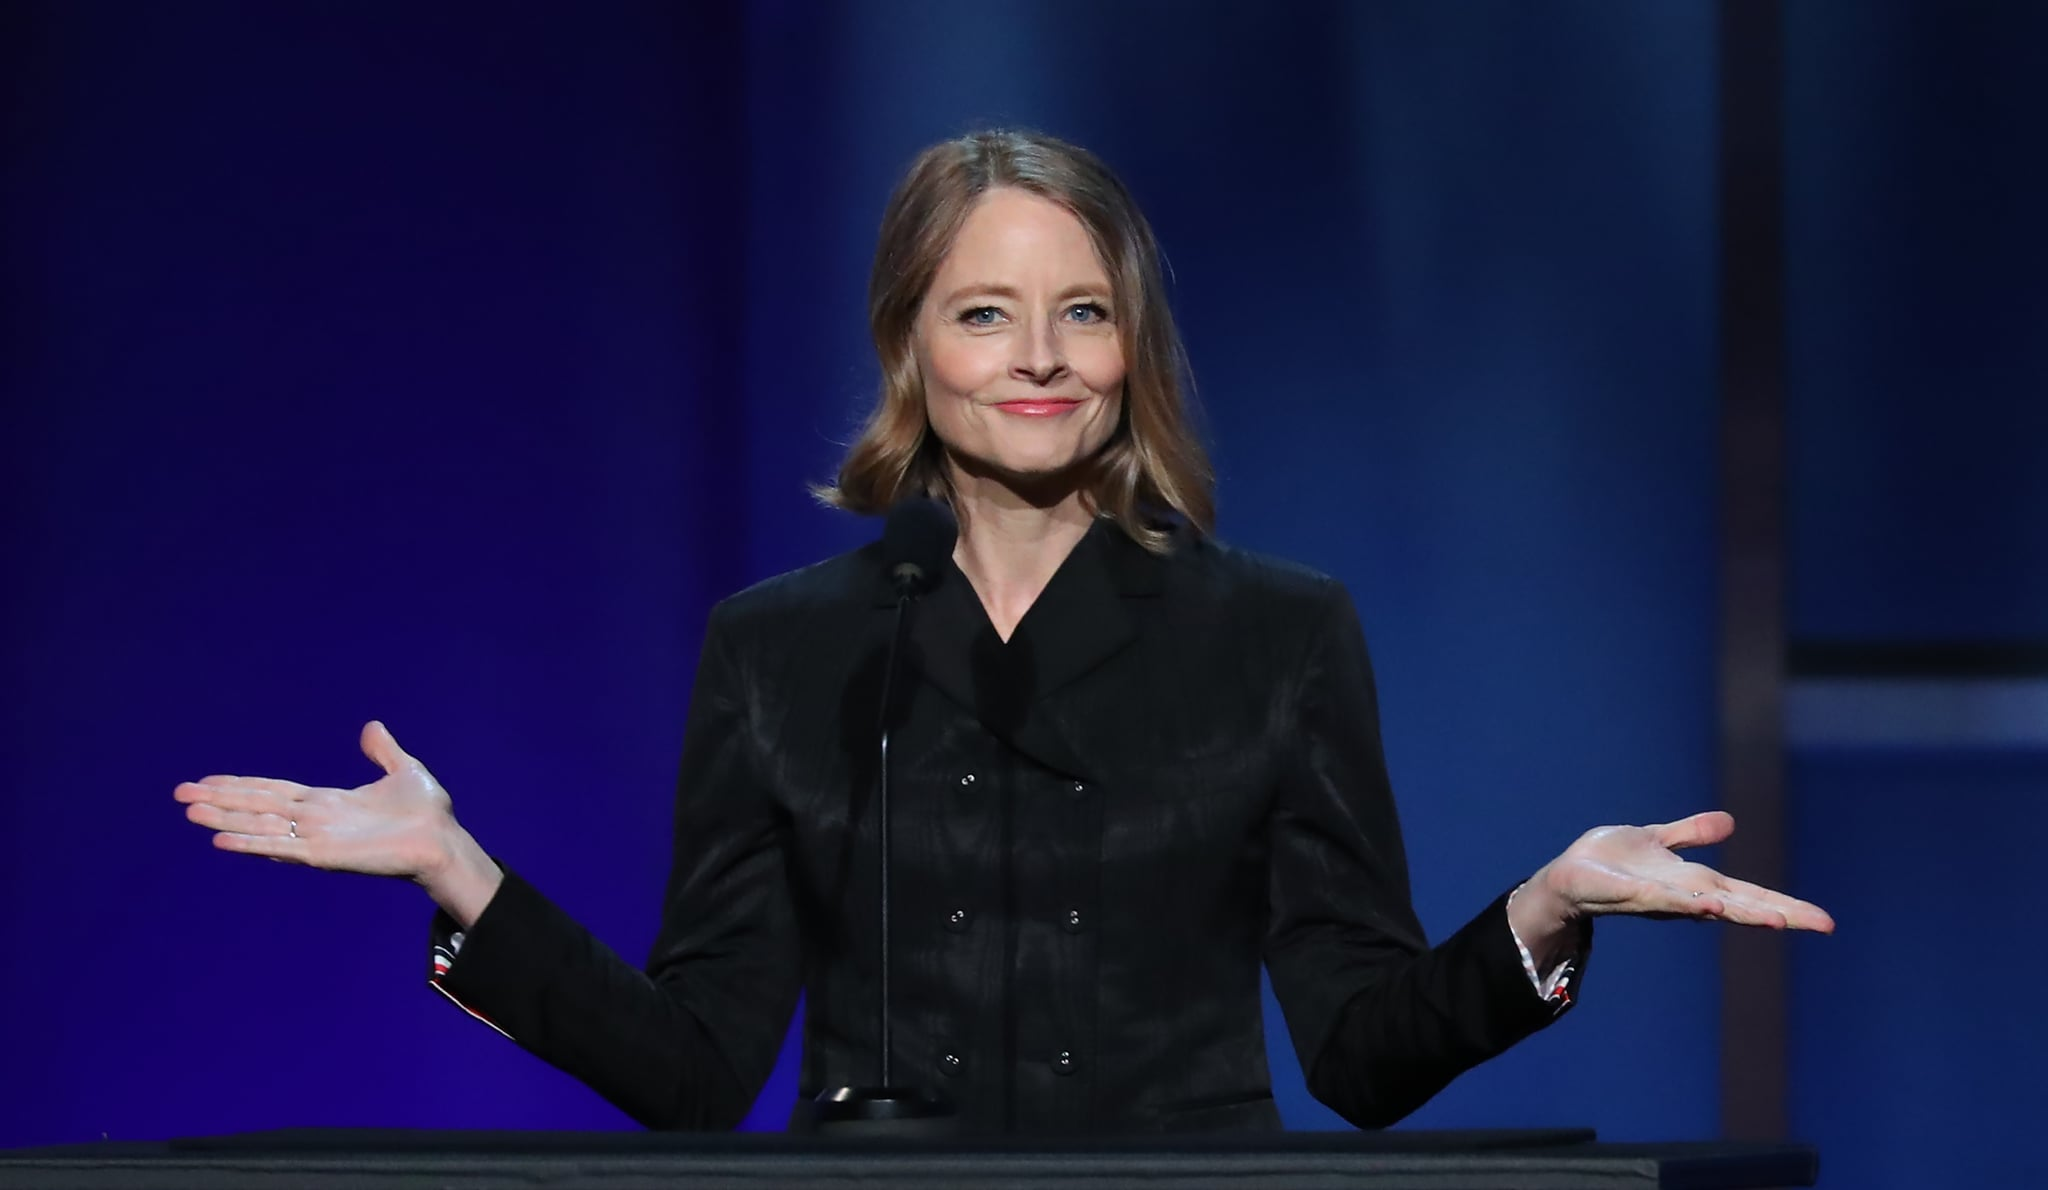 US actress Jodie Foster speaks on stage during the 47th American Film Institute (AFI) Life Achievement Award Gala at the Dolby theatre in Hollywood on June 6, 2019. (Photo by Jean-Baptiste LACROIX / AFP)        (Photo credit should read JEAN-BAPTISTE LACROIX/AFP via Getty Images)